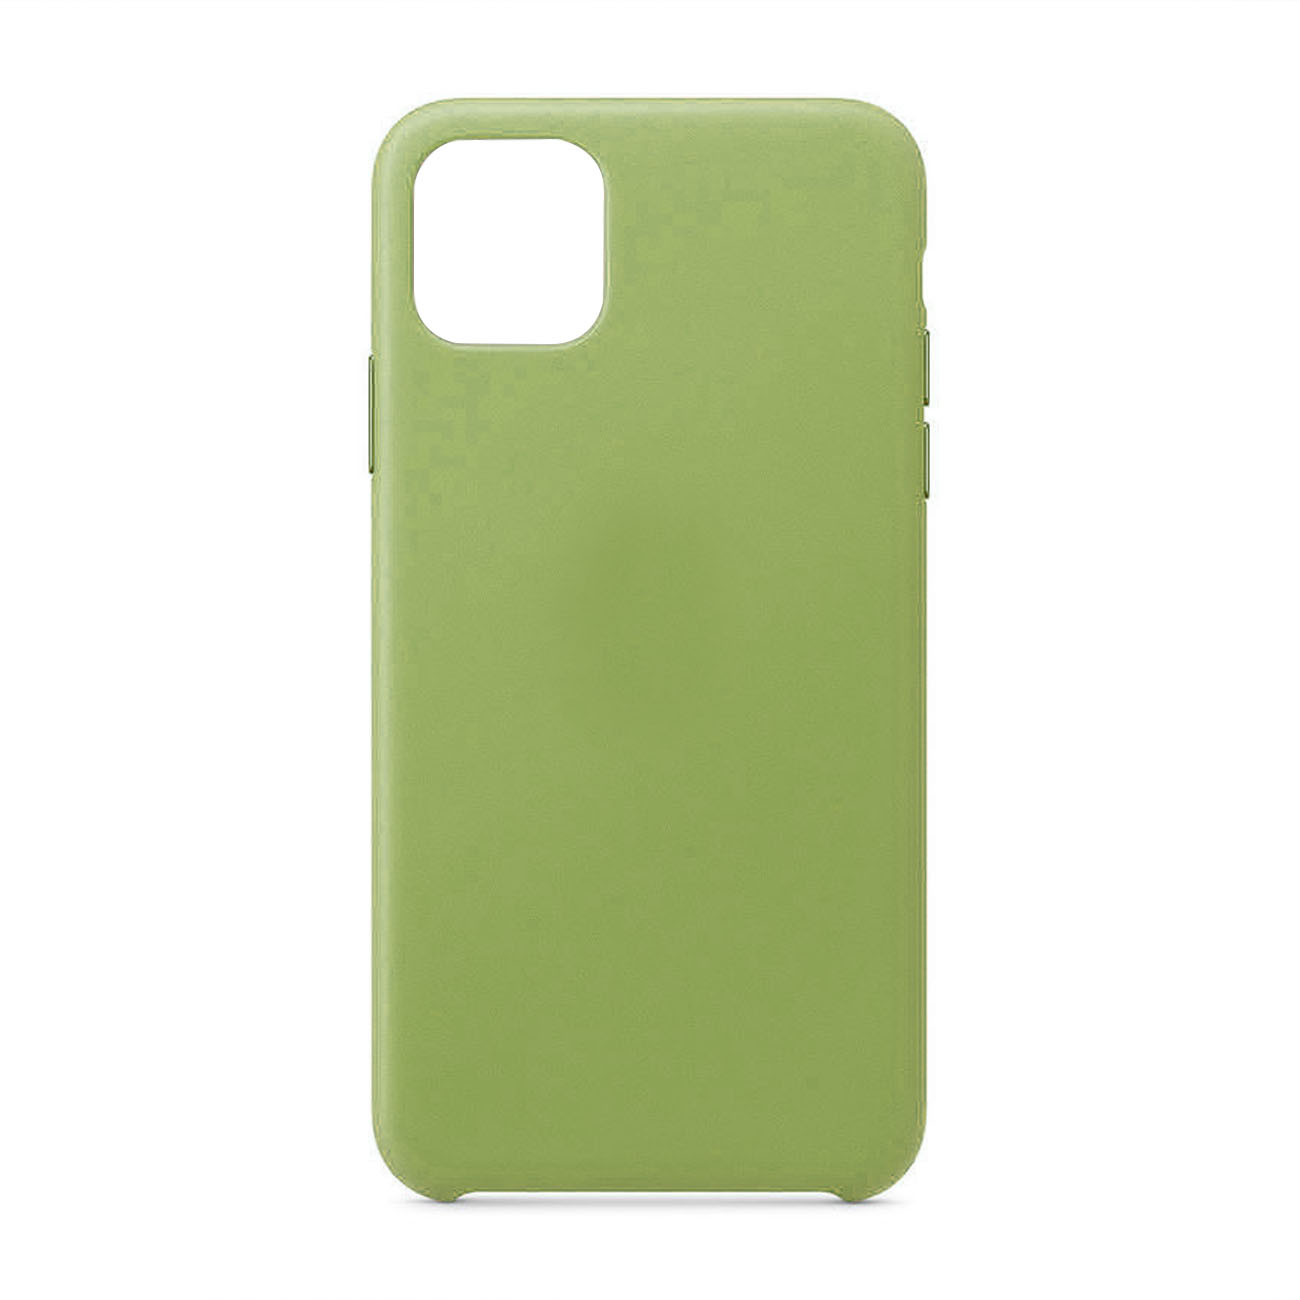 Apple iPhone 11 Gummy Cases In Green